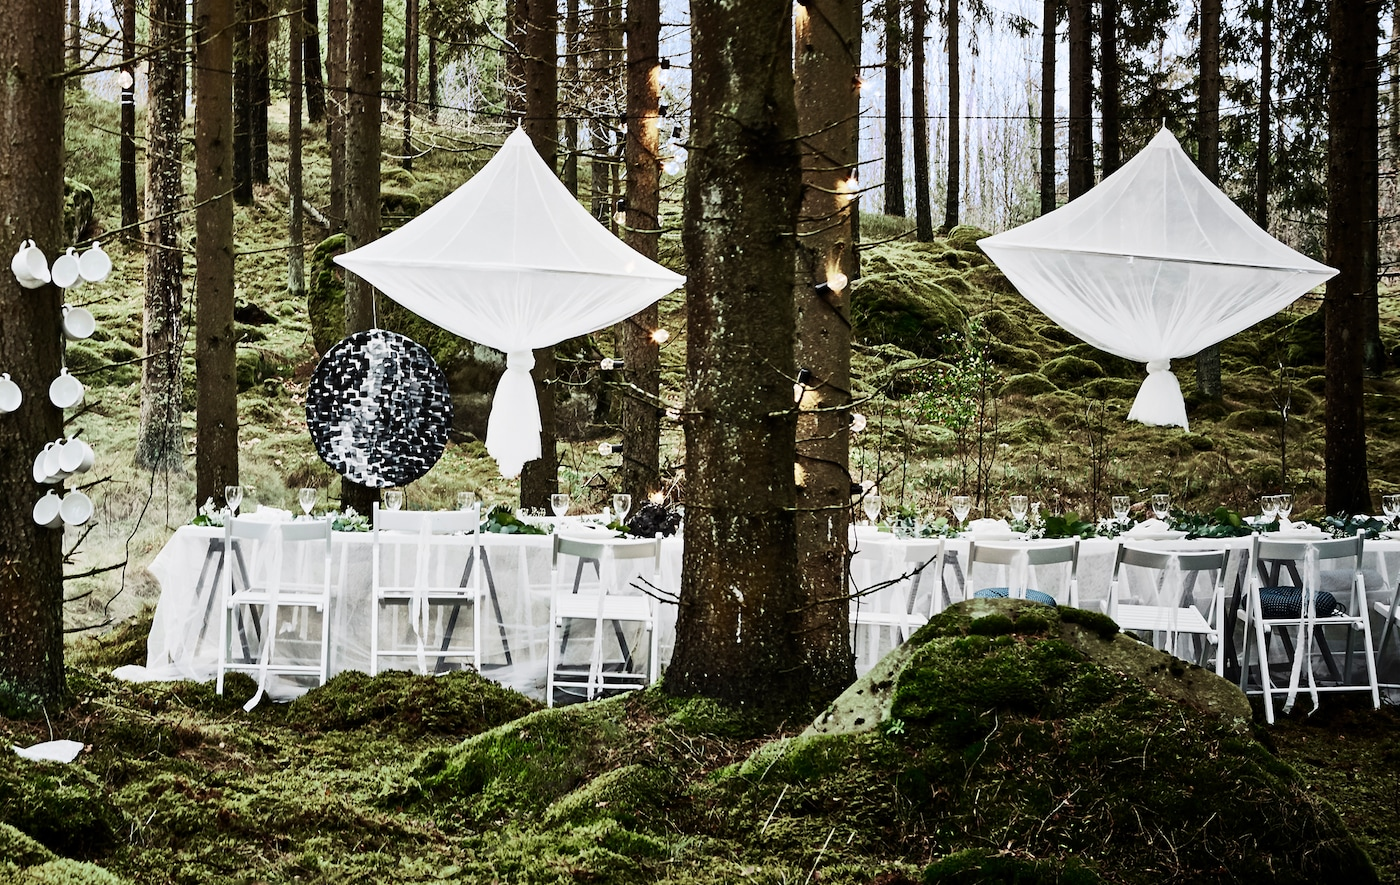 A wedding party dining setup in a forest with white chairs, lace curtain tablecloths and big chandelier-style centrepieces hanging above the table